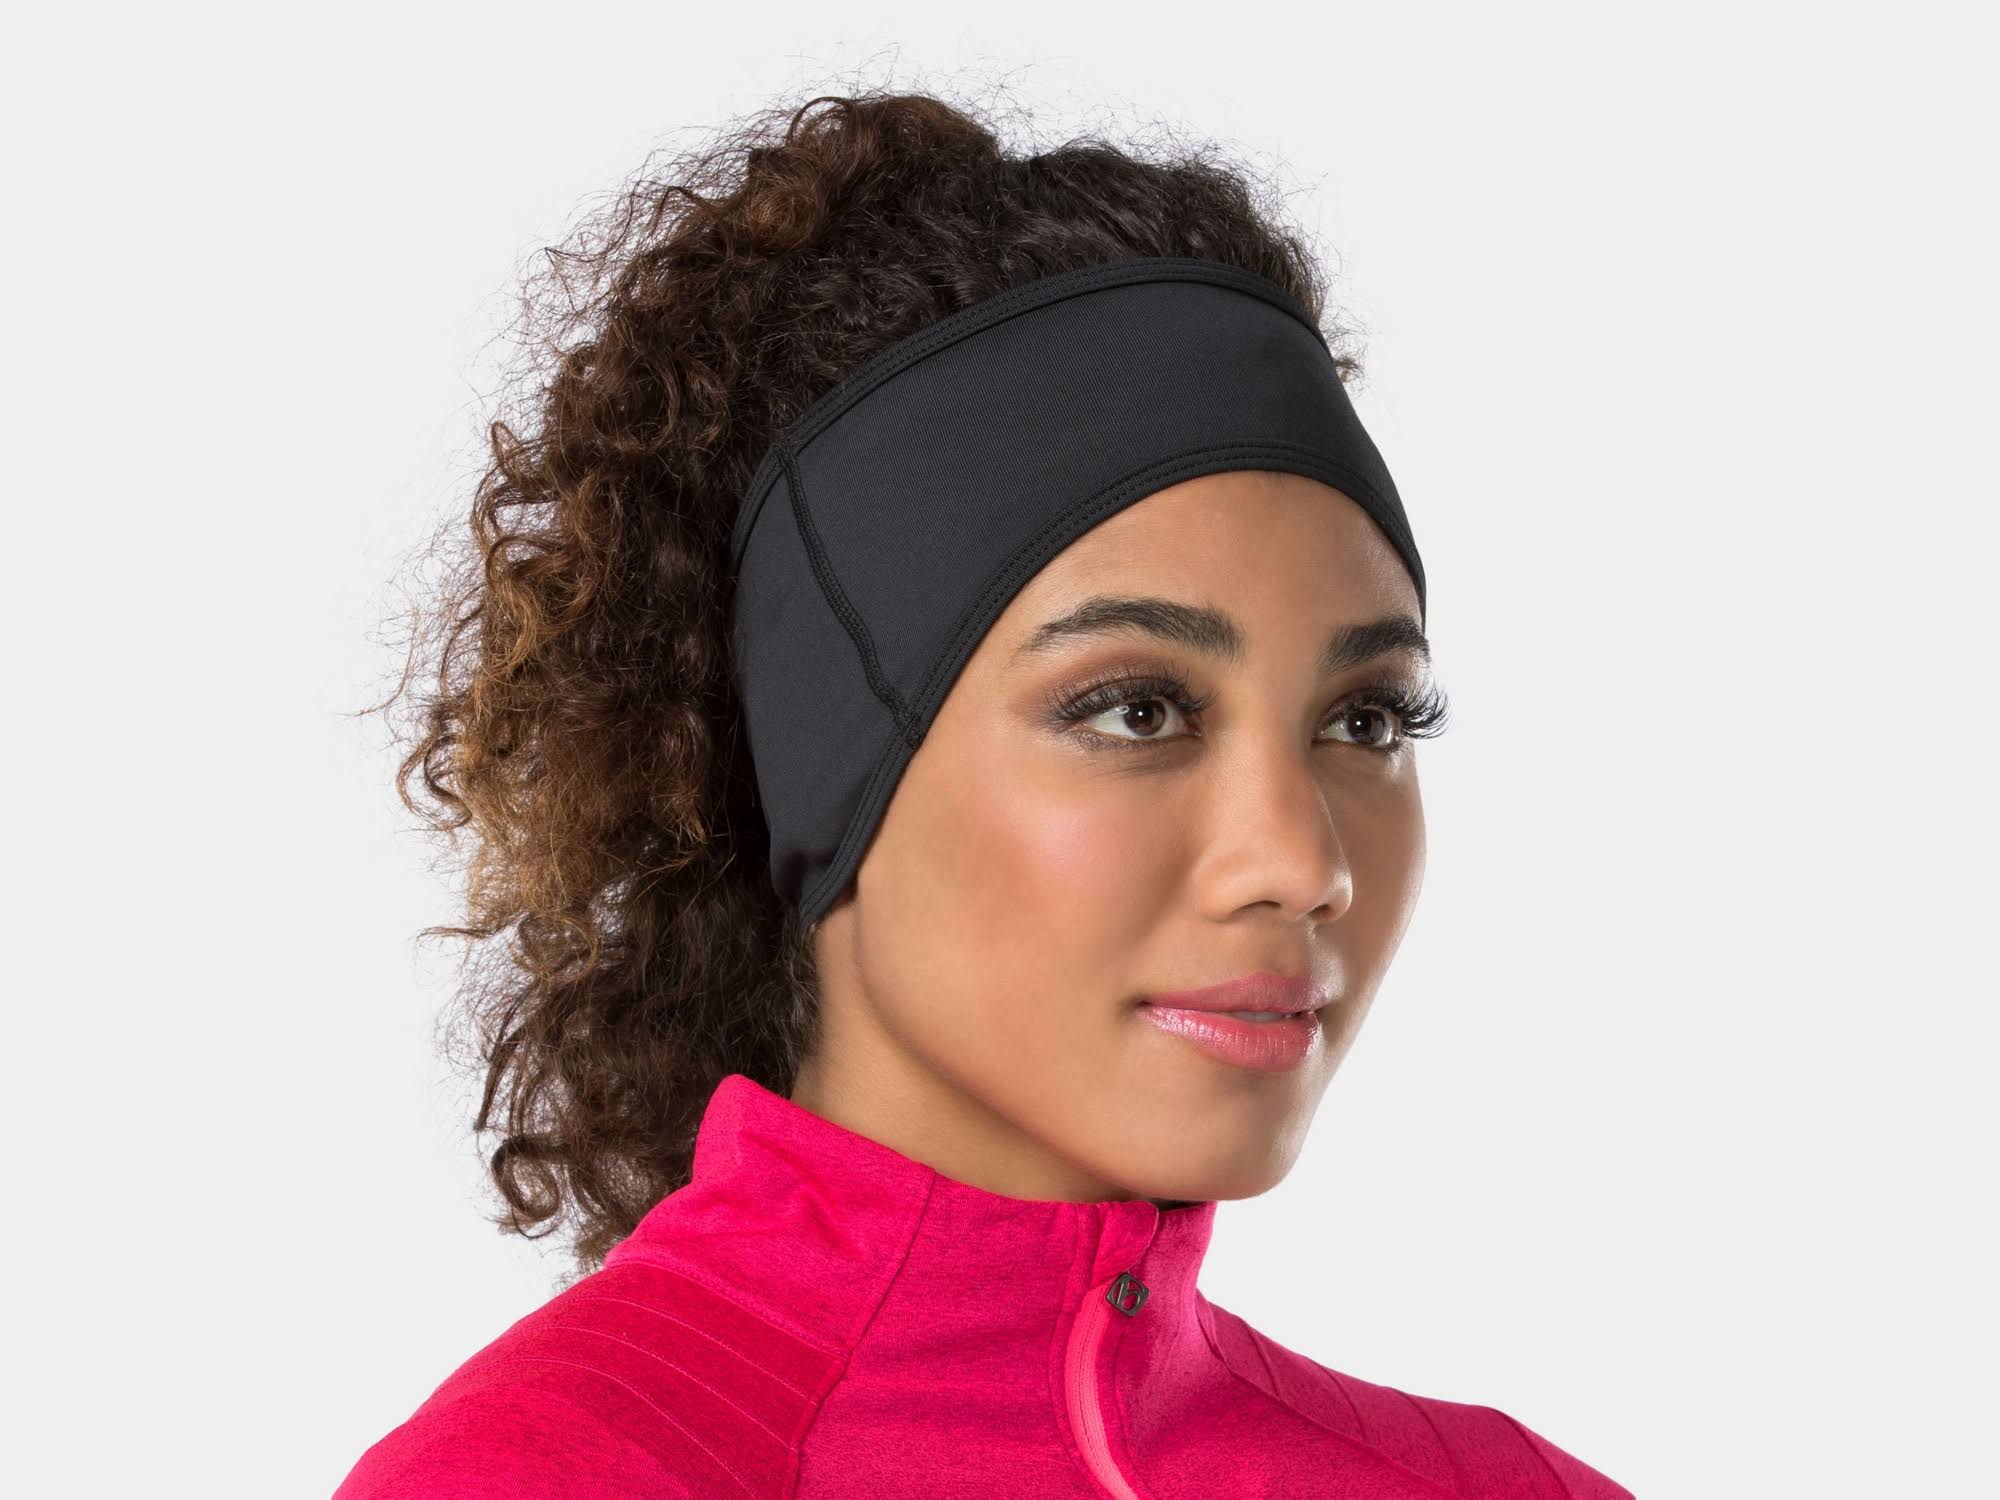 Bontrager Thermal Cycling Headband - Black - One Size